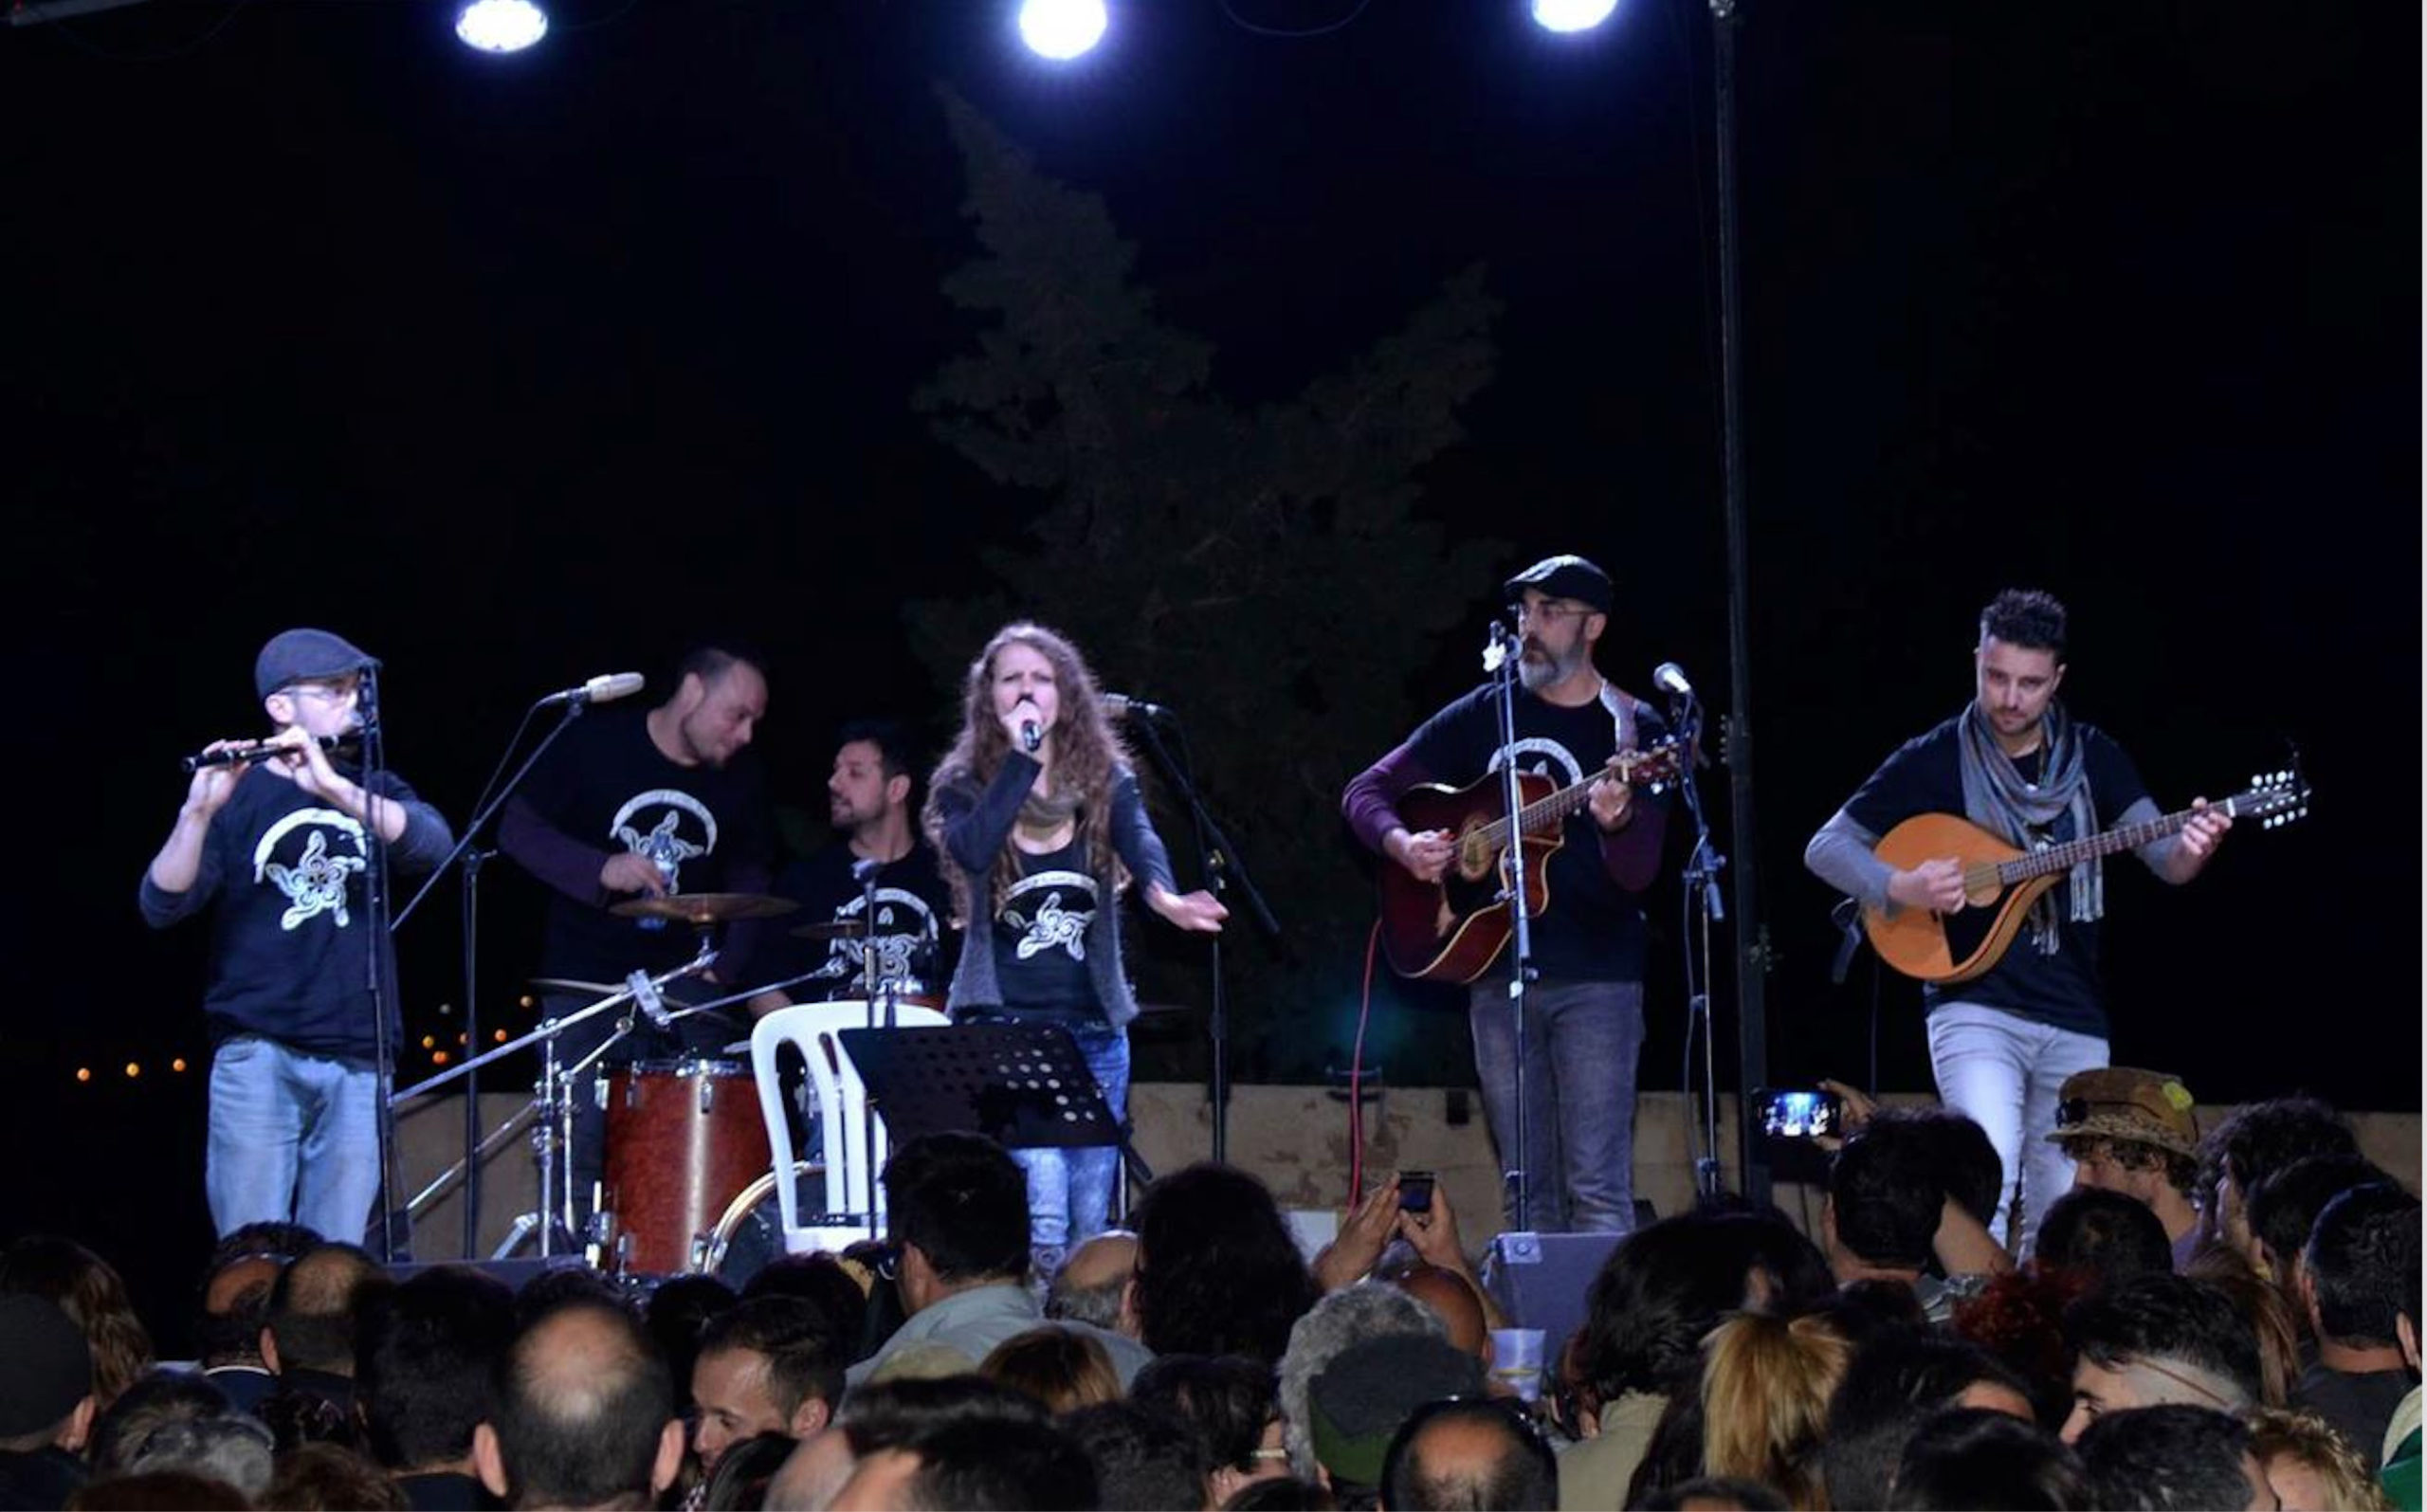 Groovy Celtic Band